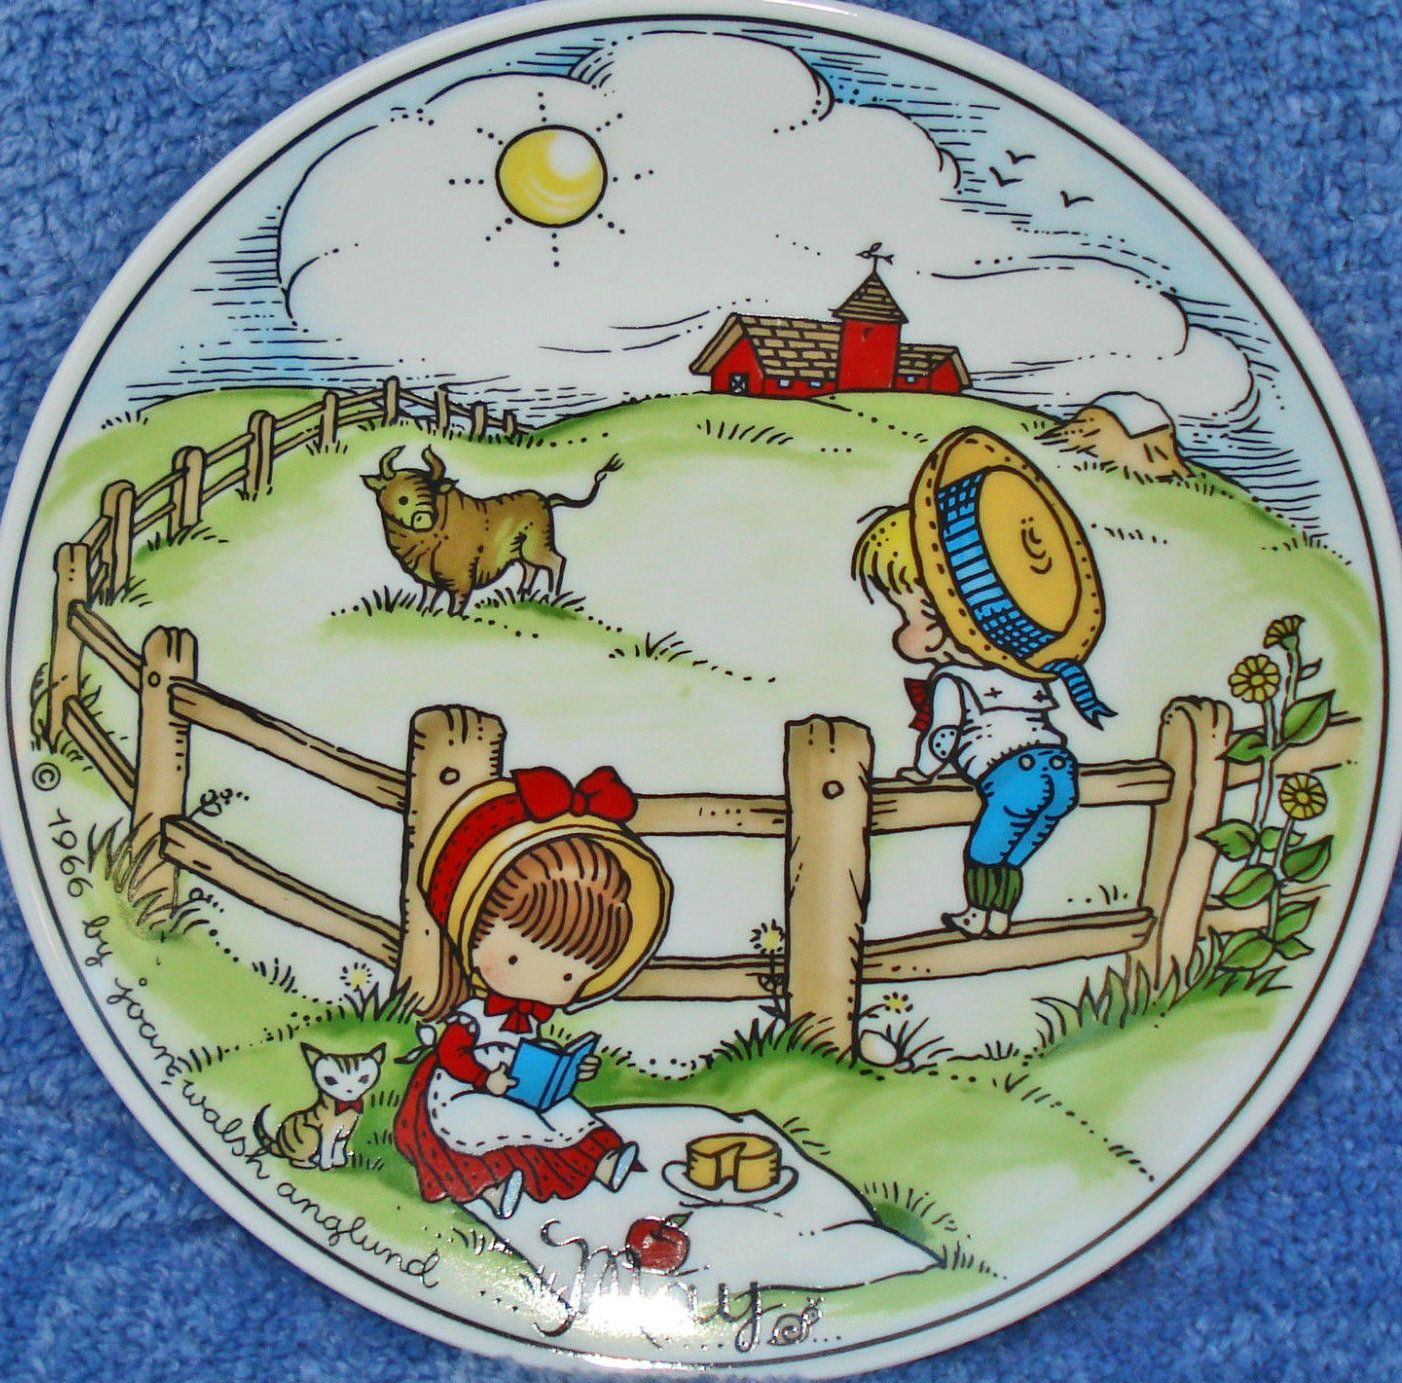 Joan Walsh Anglund, May 1966 (http://www.ebay.com/itm/1966-MAY-JOAN-WALSH-ANGLUND-7-3-4-CERAMIC-PLATE-BOY-GIRL-ON-FARM-PICNIC-/221429254461?pt=LH_DefaultDomain_0hash=item338e36493d)